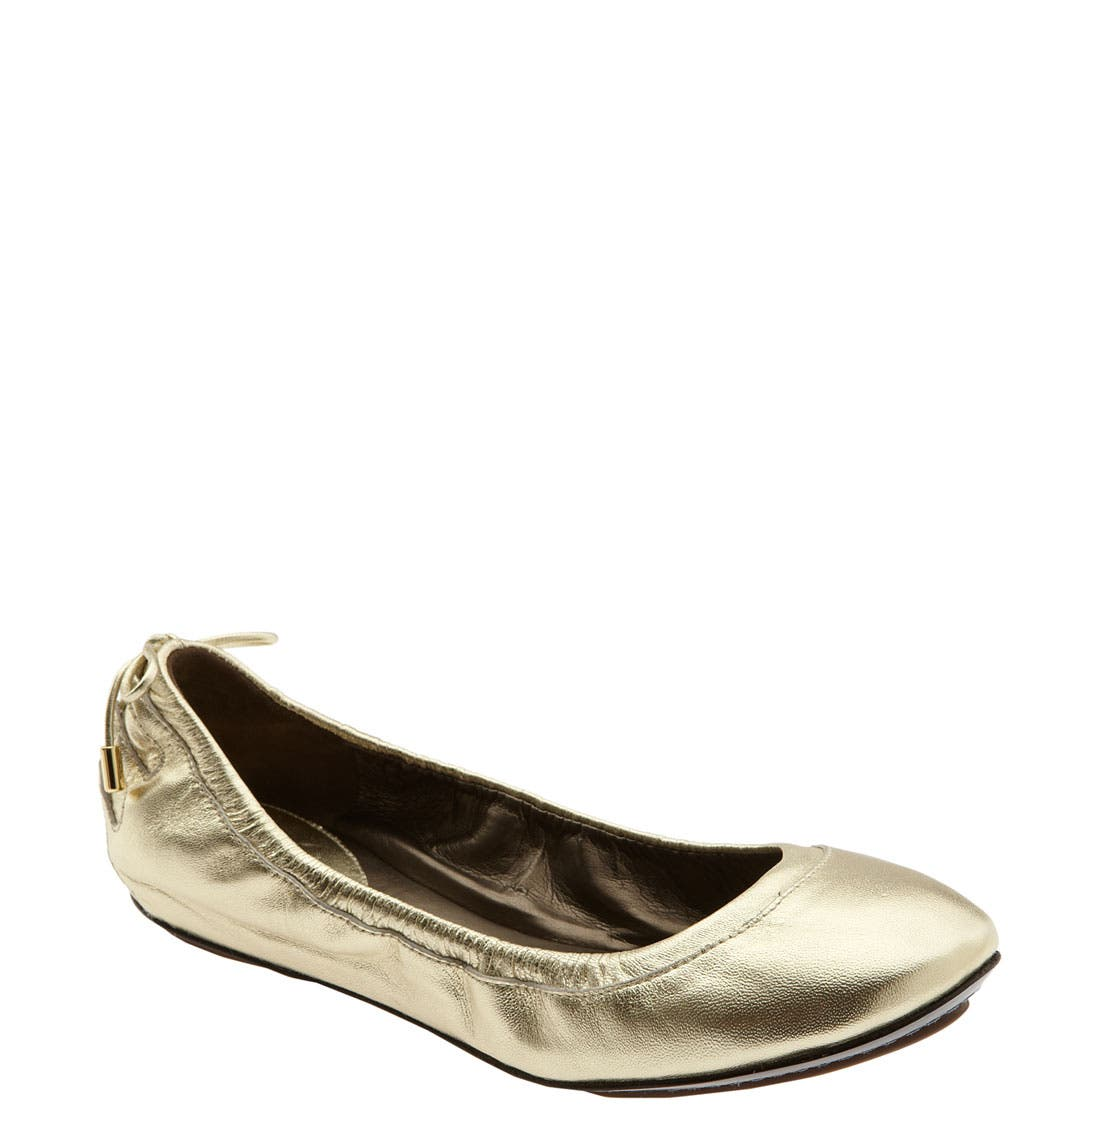 ,                             Maria Sharapova by Cole Haan 'Air Bacara' Flat,                             Main thumbnail 95, color,                             710